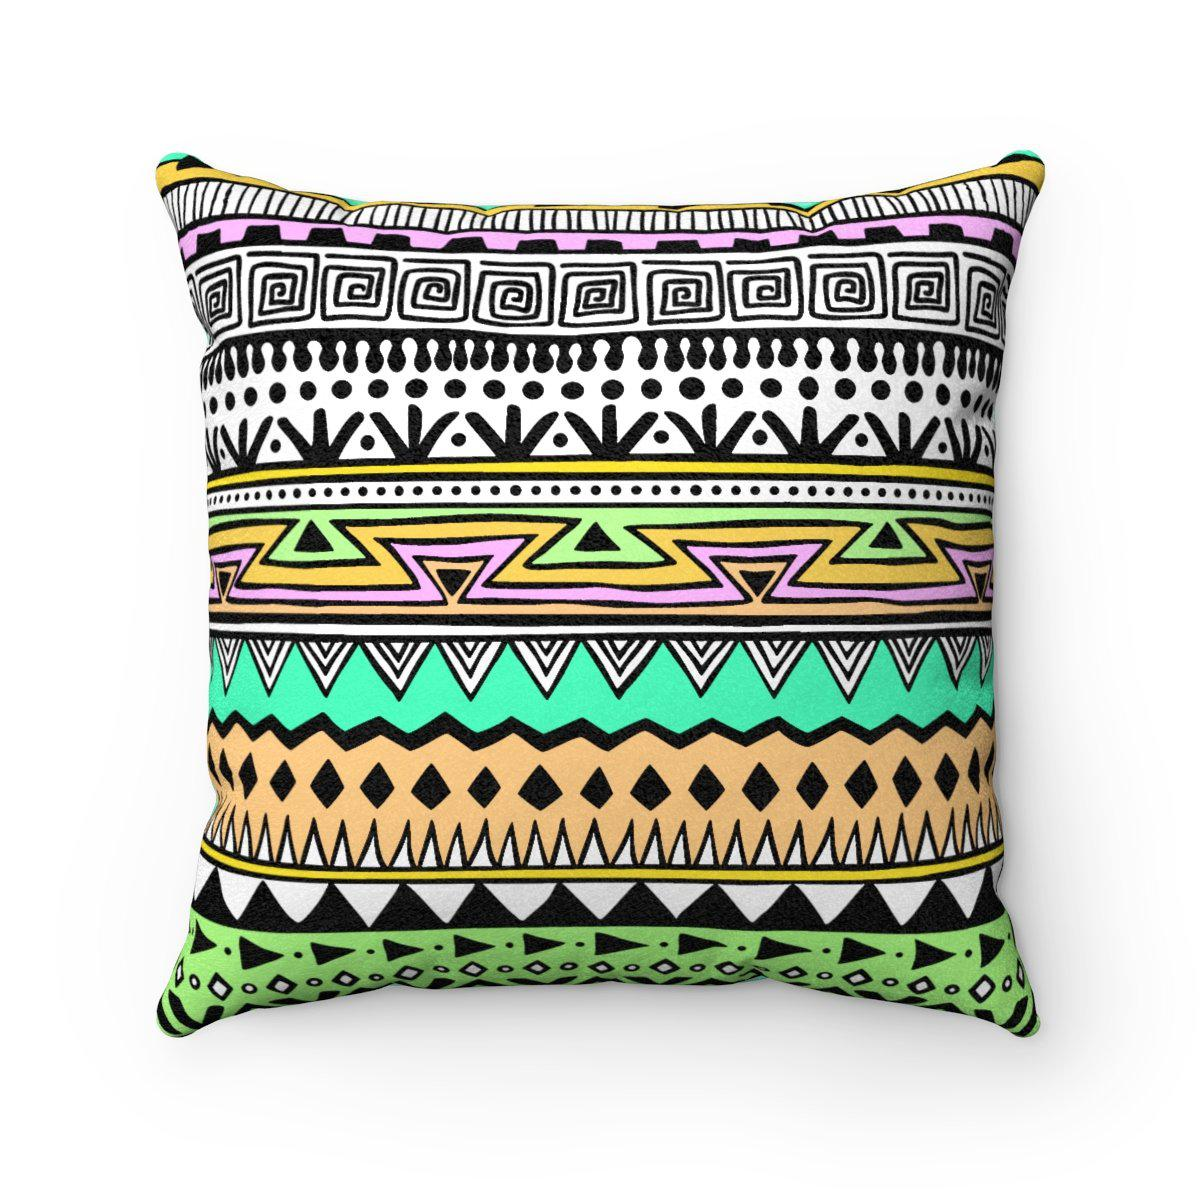 Turquoise Faux suede 2 in 1 tribal decorative pillow w/insert-Home Decor - Decorative Accents - Pillows & Throws - Decorative Pillows-Maison d'Elite-14x14-Très Elite